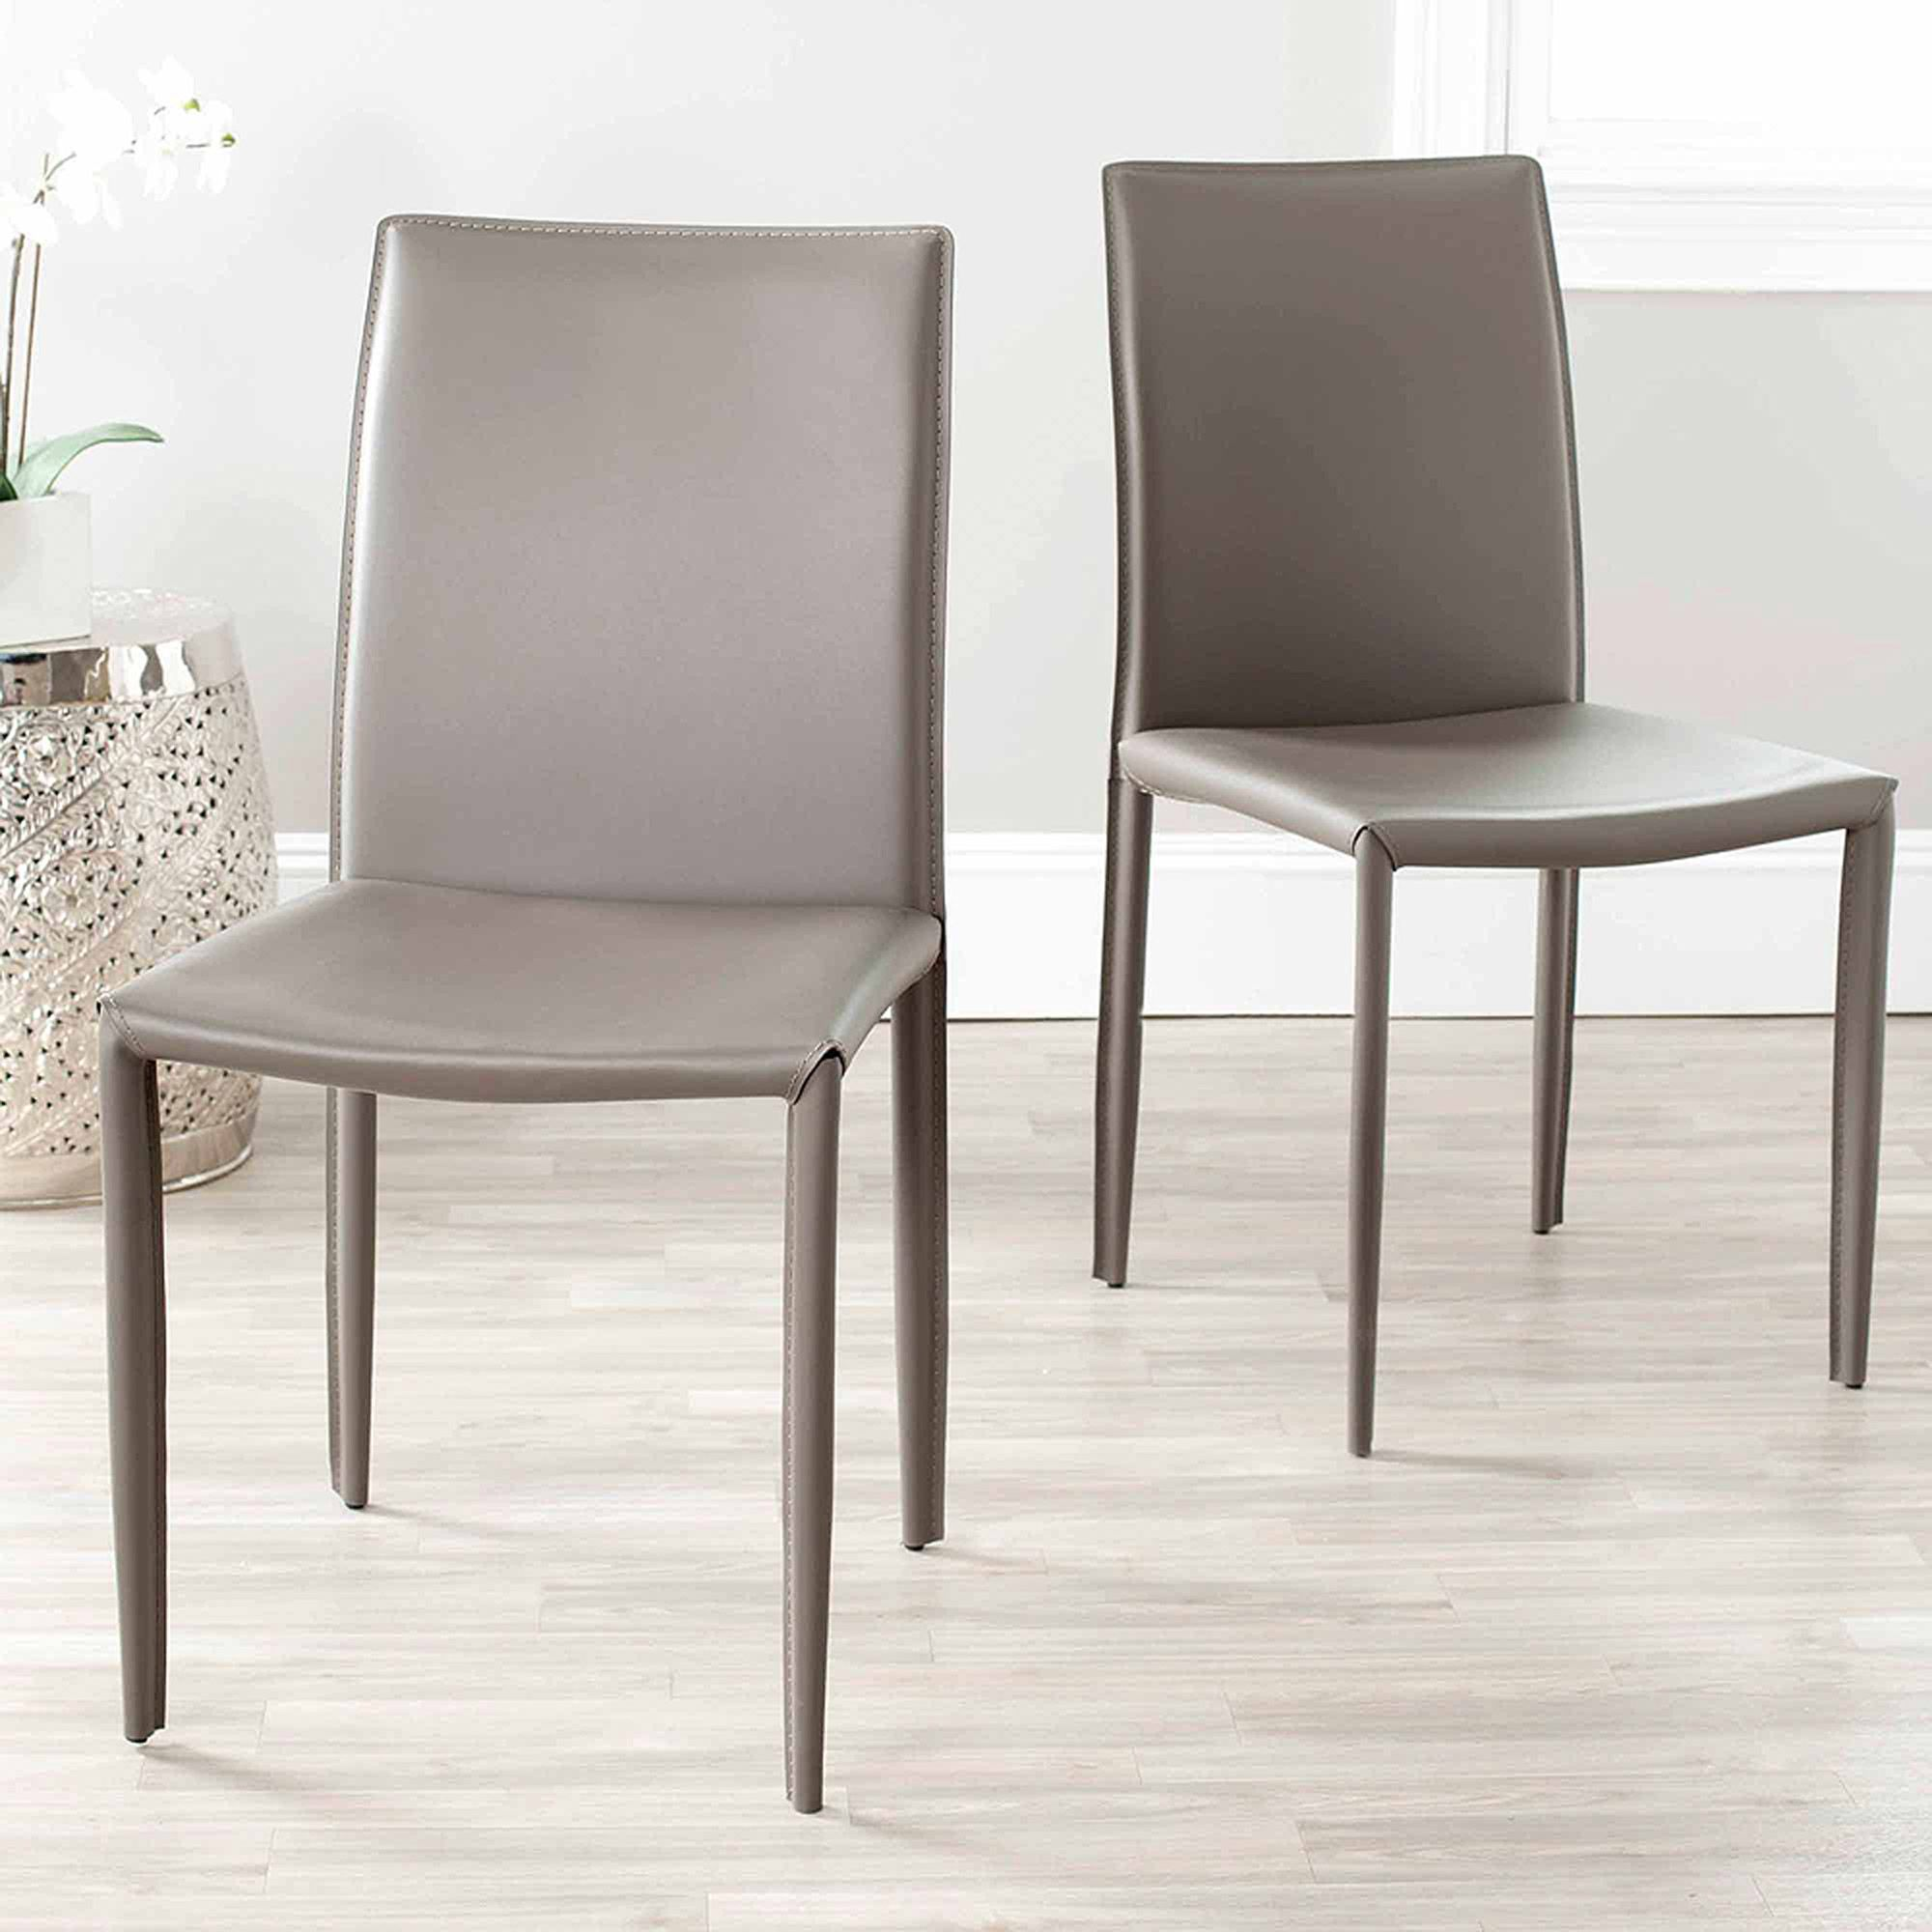 Excellent Safavieh Dining Chair 2019